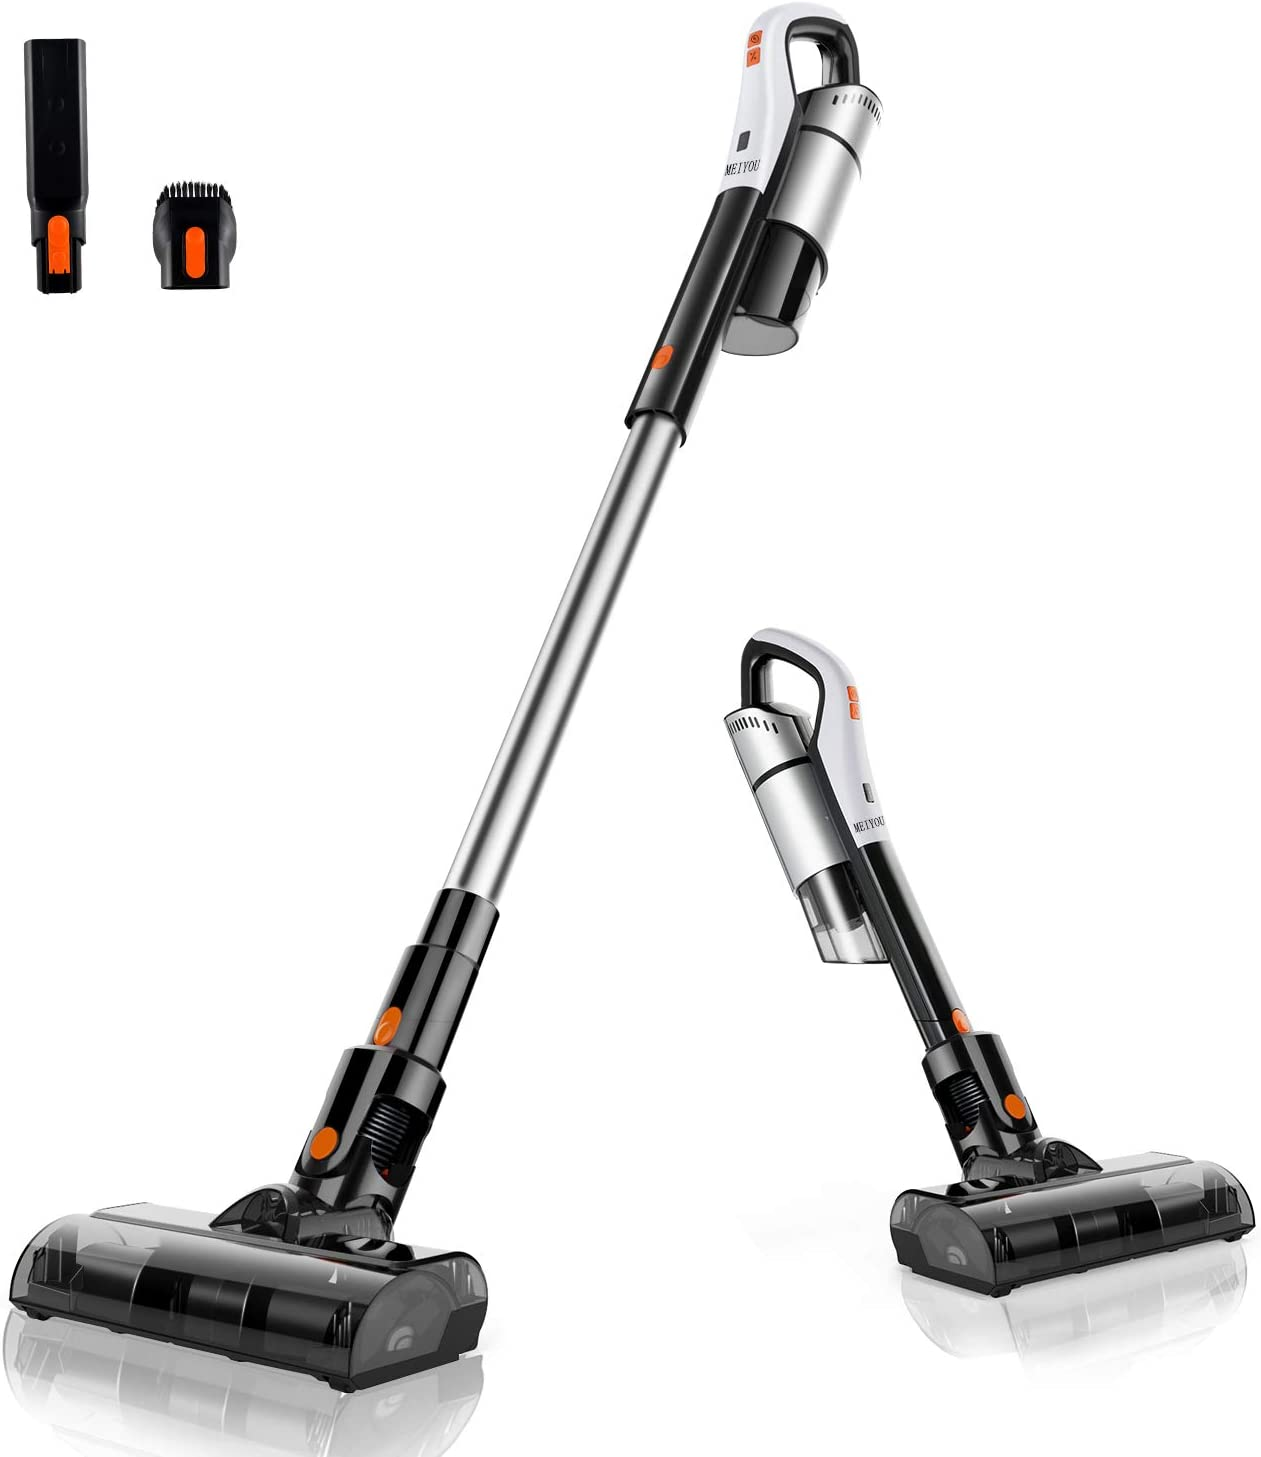 Cordless Vacuum Rugs Upgrade Lightweight Stick Vacuum for Hard Floors APOSEN Pet Vacuum Cleaner with Extension Wand /& Detachable Battery